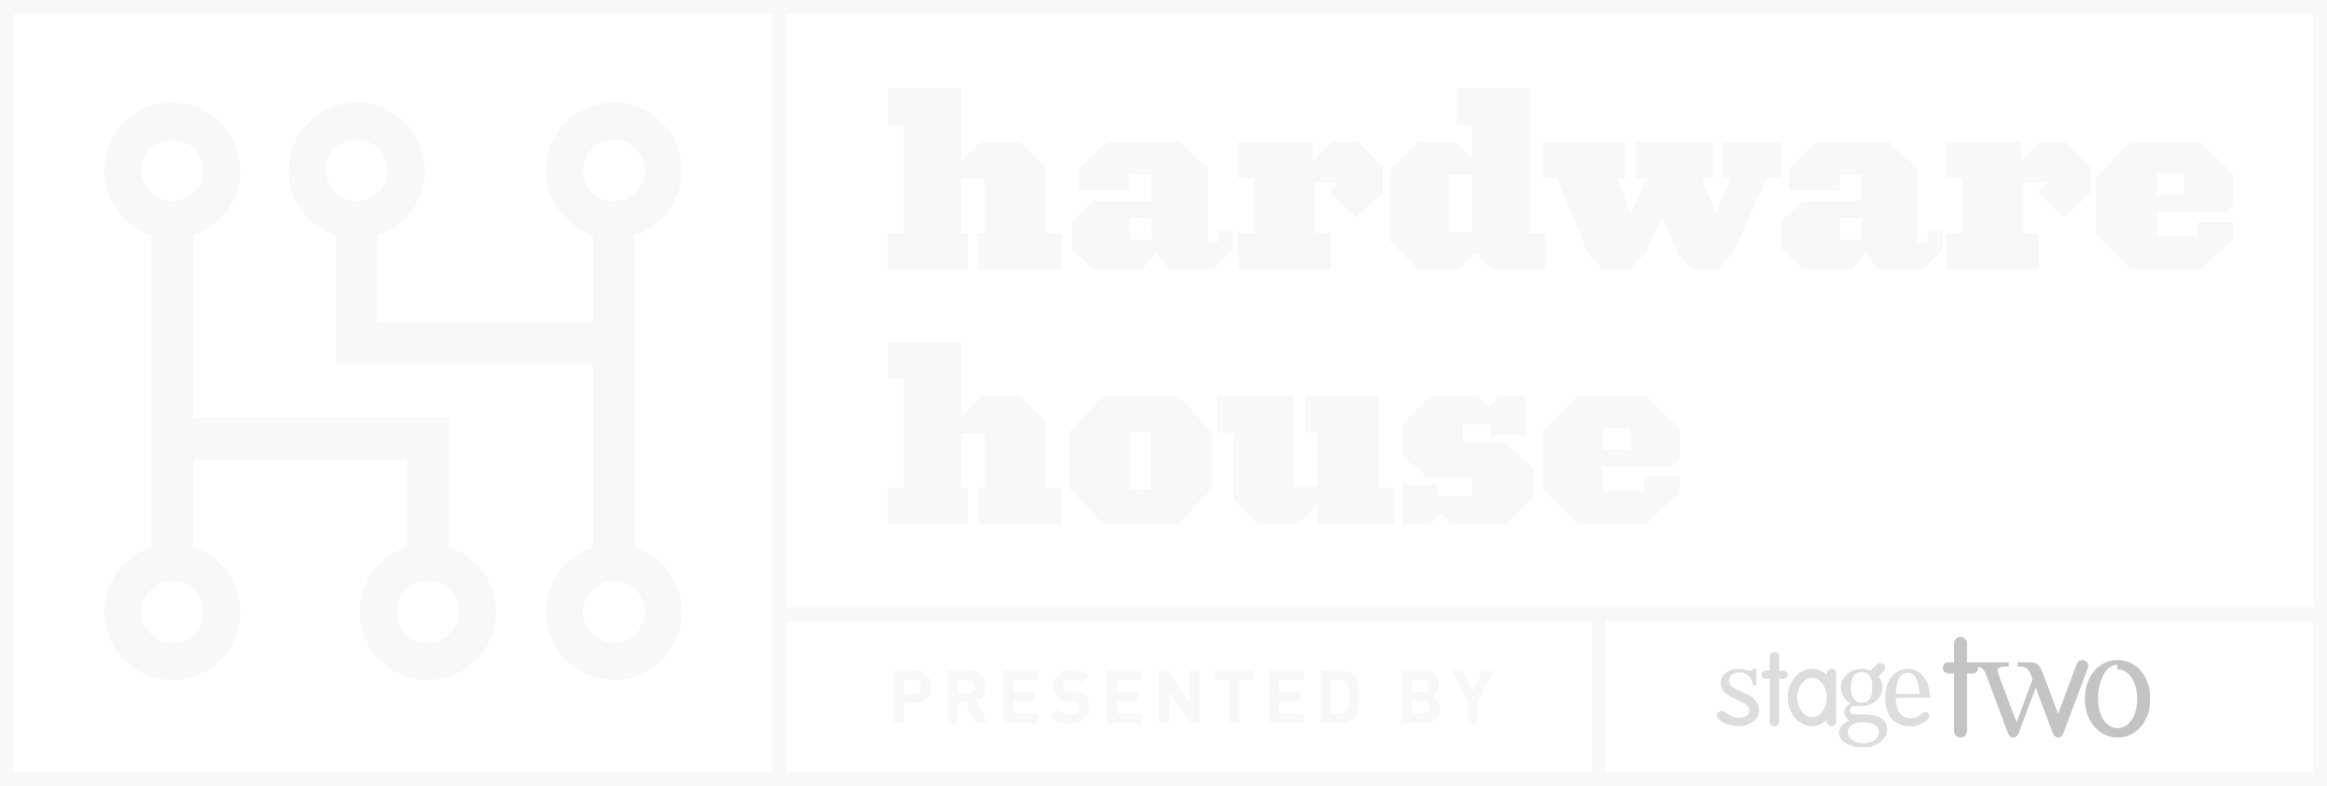 231.hardwarehouse-S2-Black-and-white-Tra